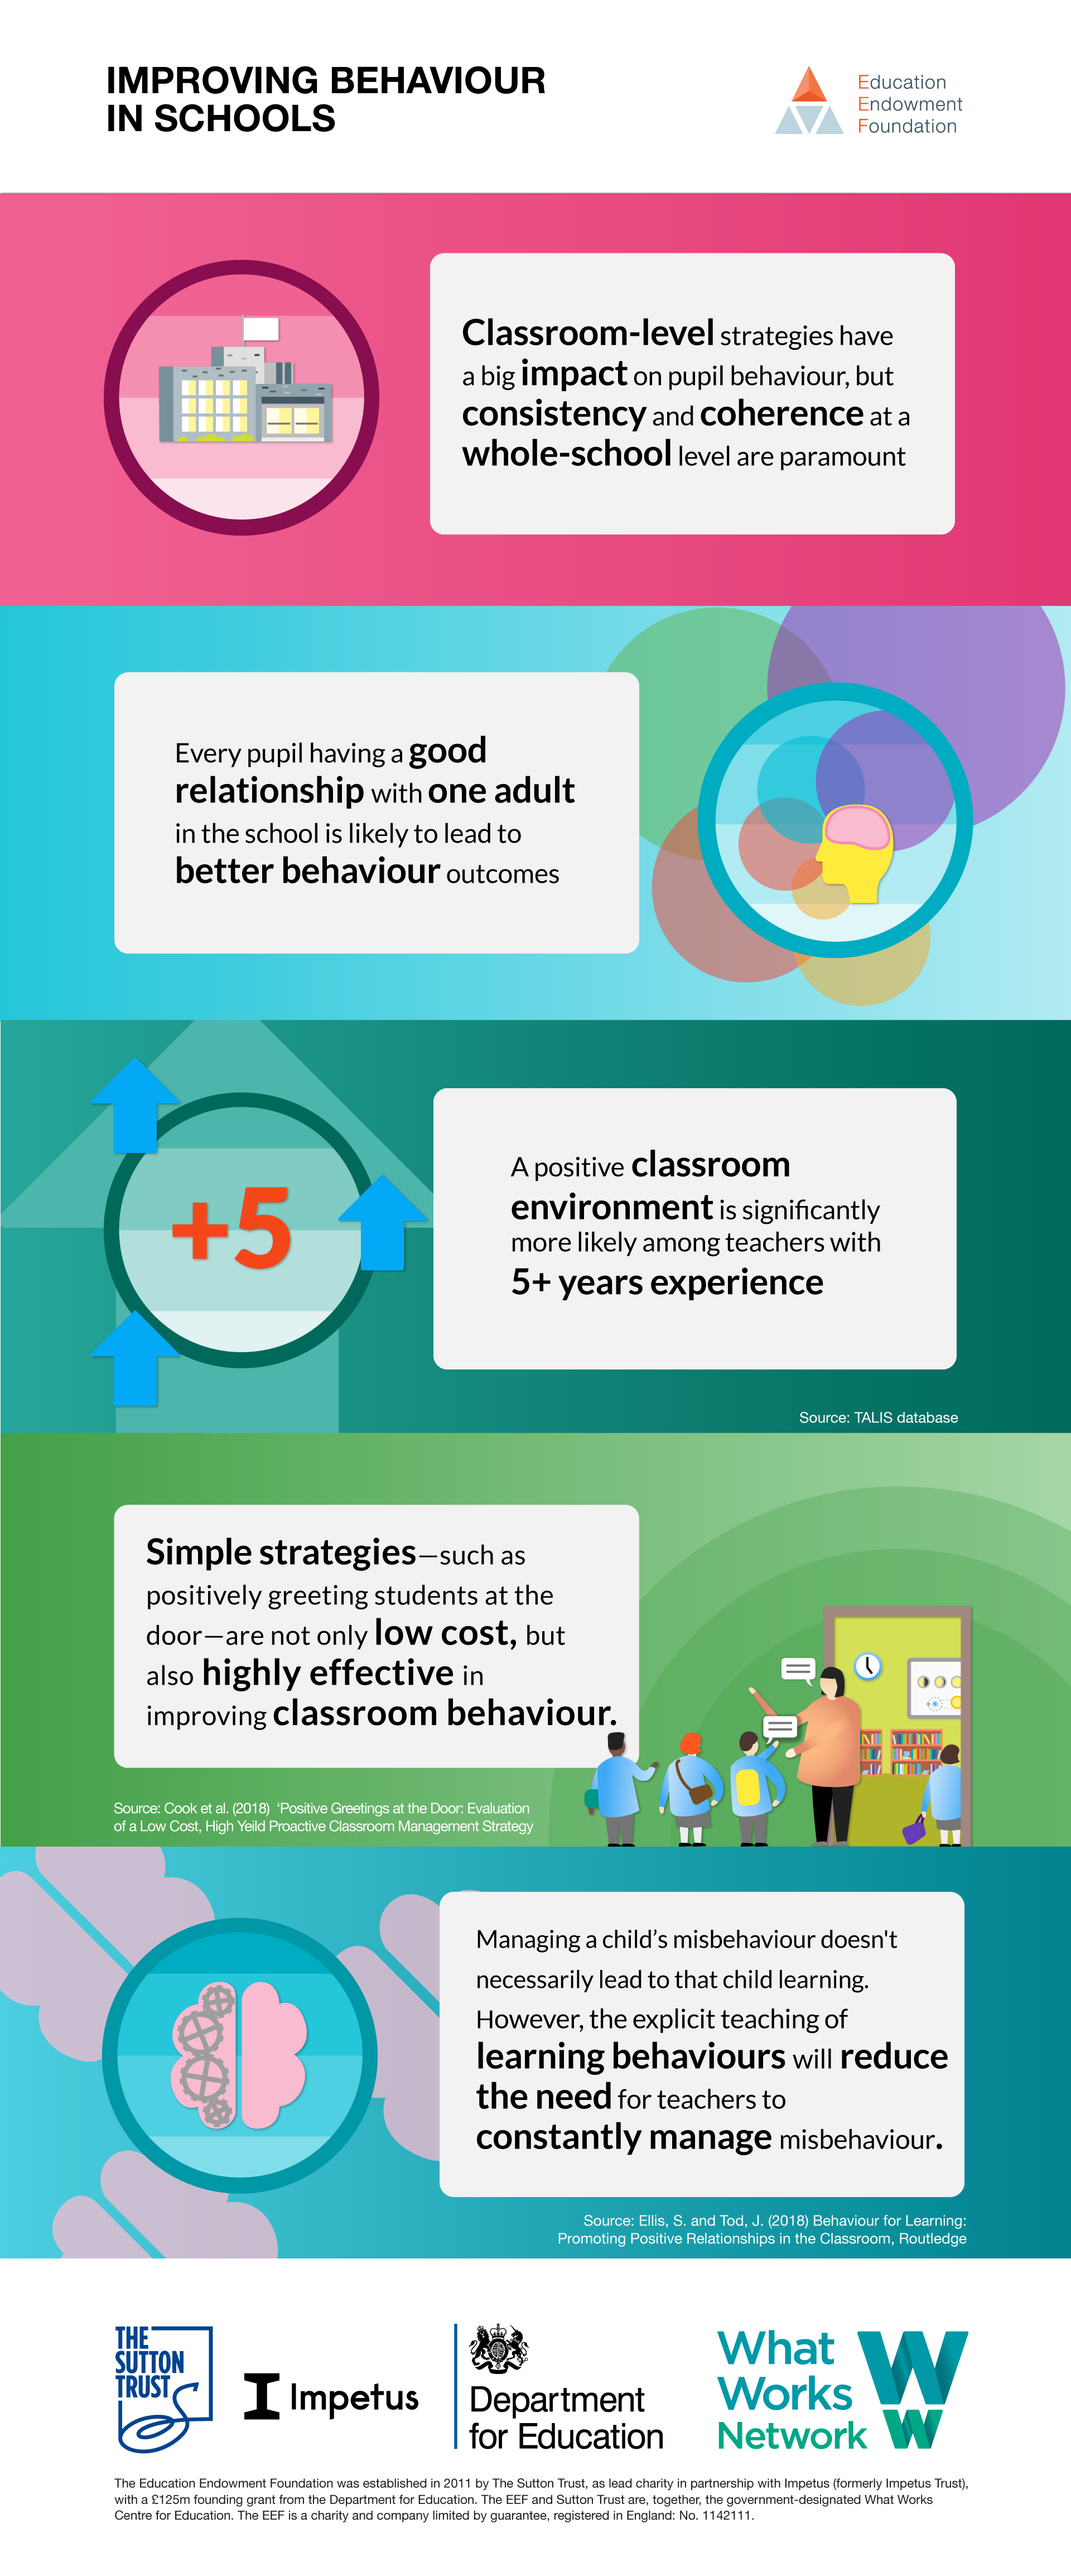 Proactive Discipline Can Lower >> 6 Key Recommendations From The Eefbehaviour Guidance Report